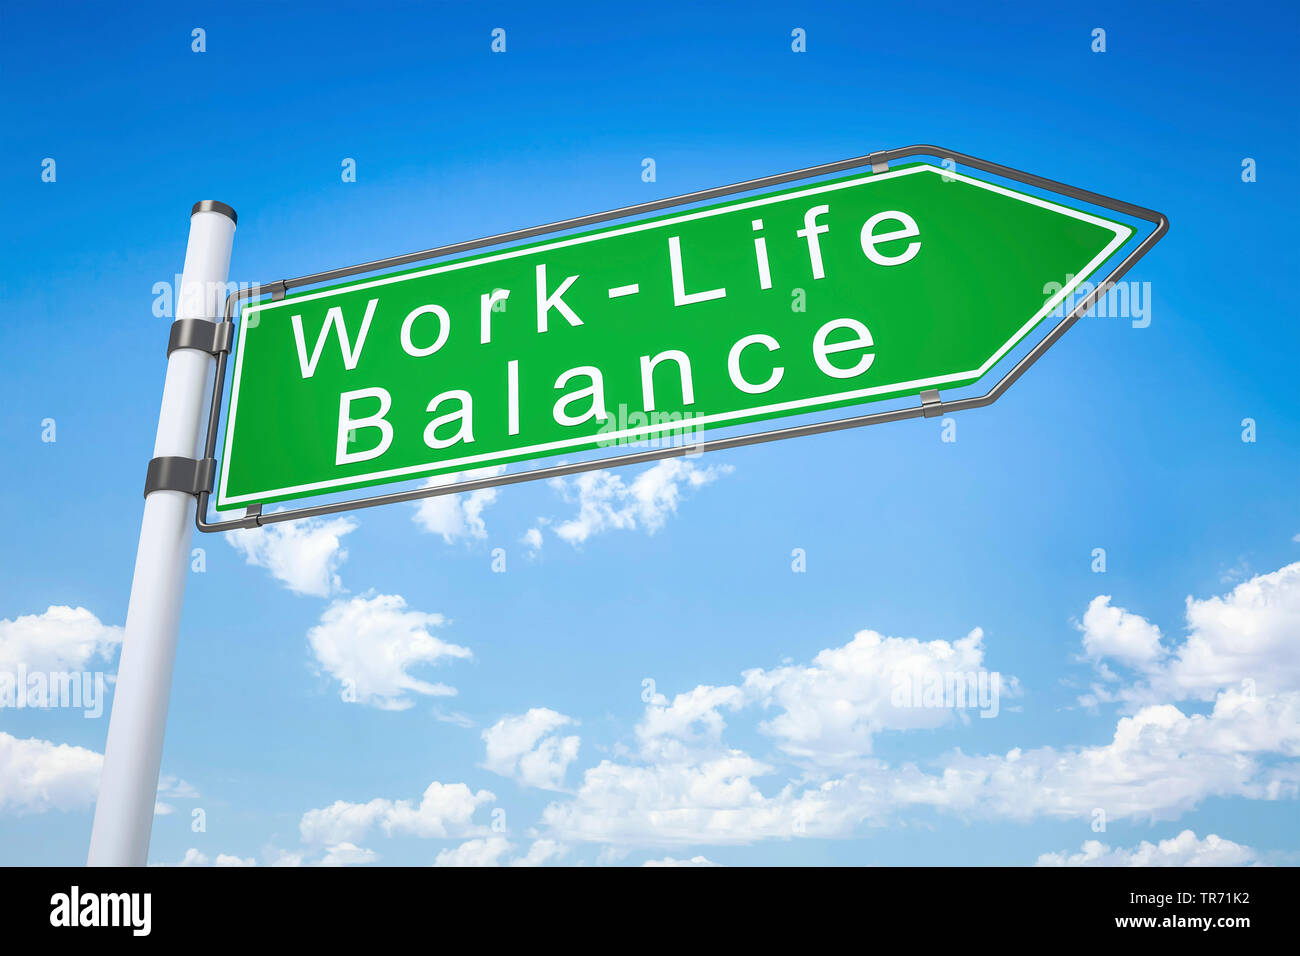 3D computer graphic, road sign in green color lettering WORK LIFE BALANCE - Stock Image